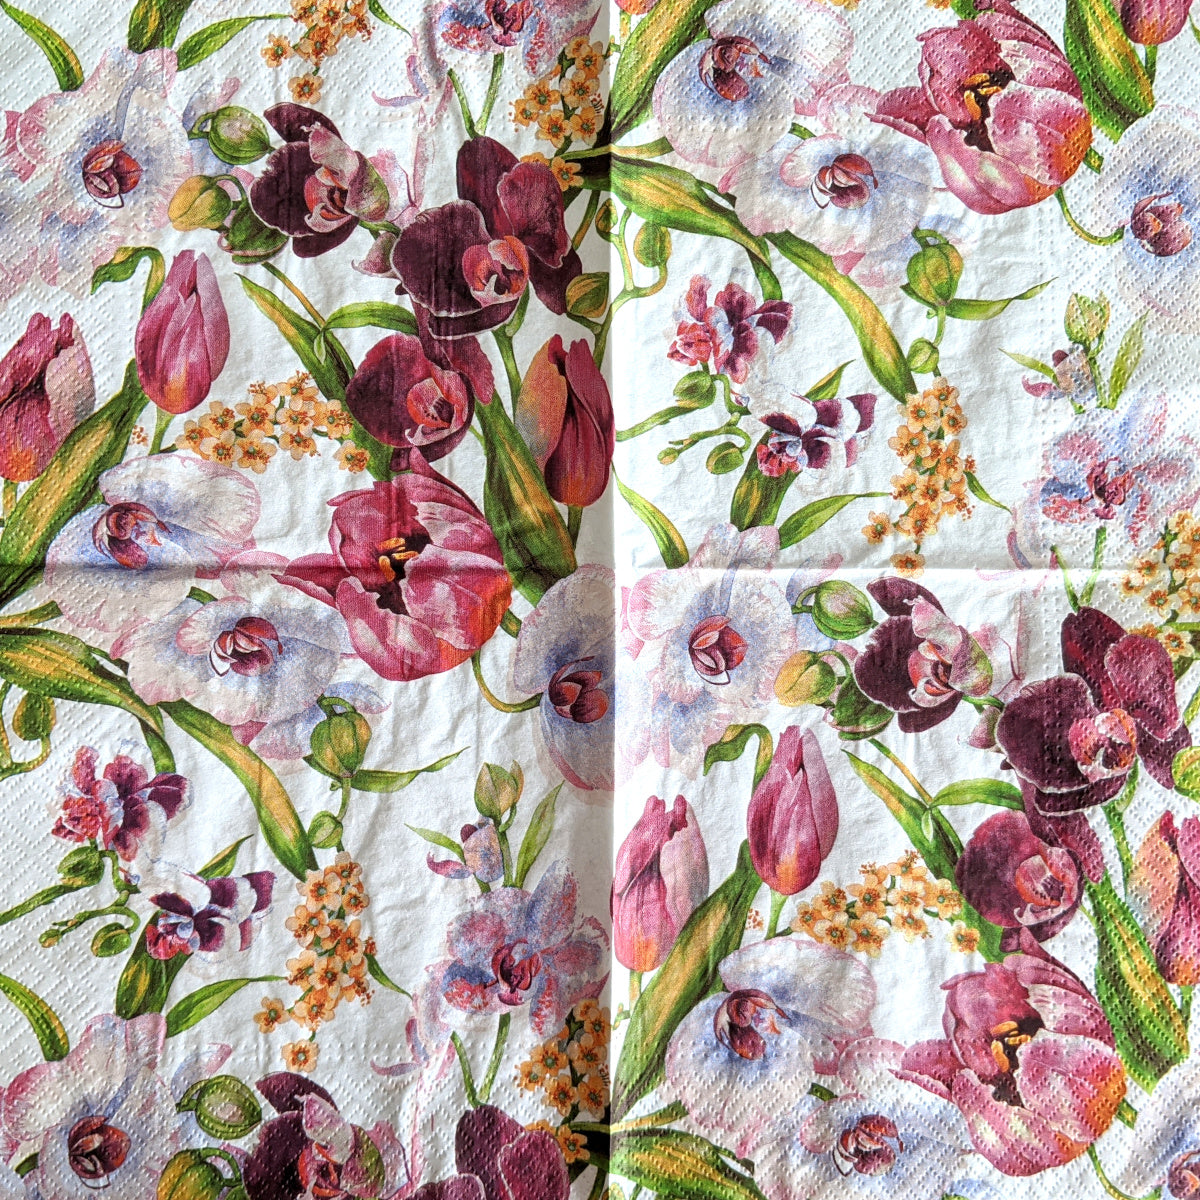 Violet Charm Orchid Napkins for Decoupage